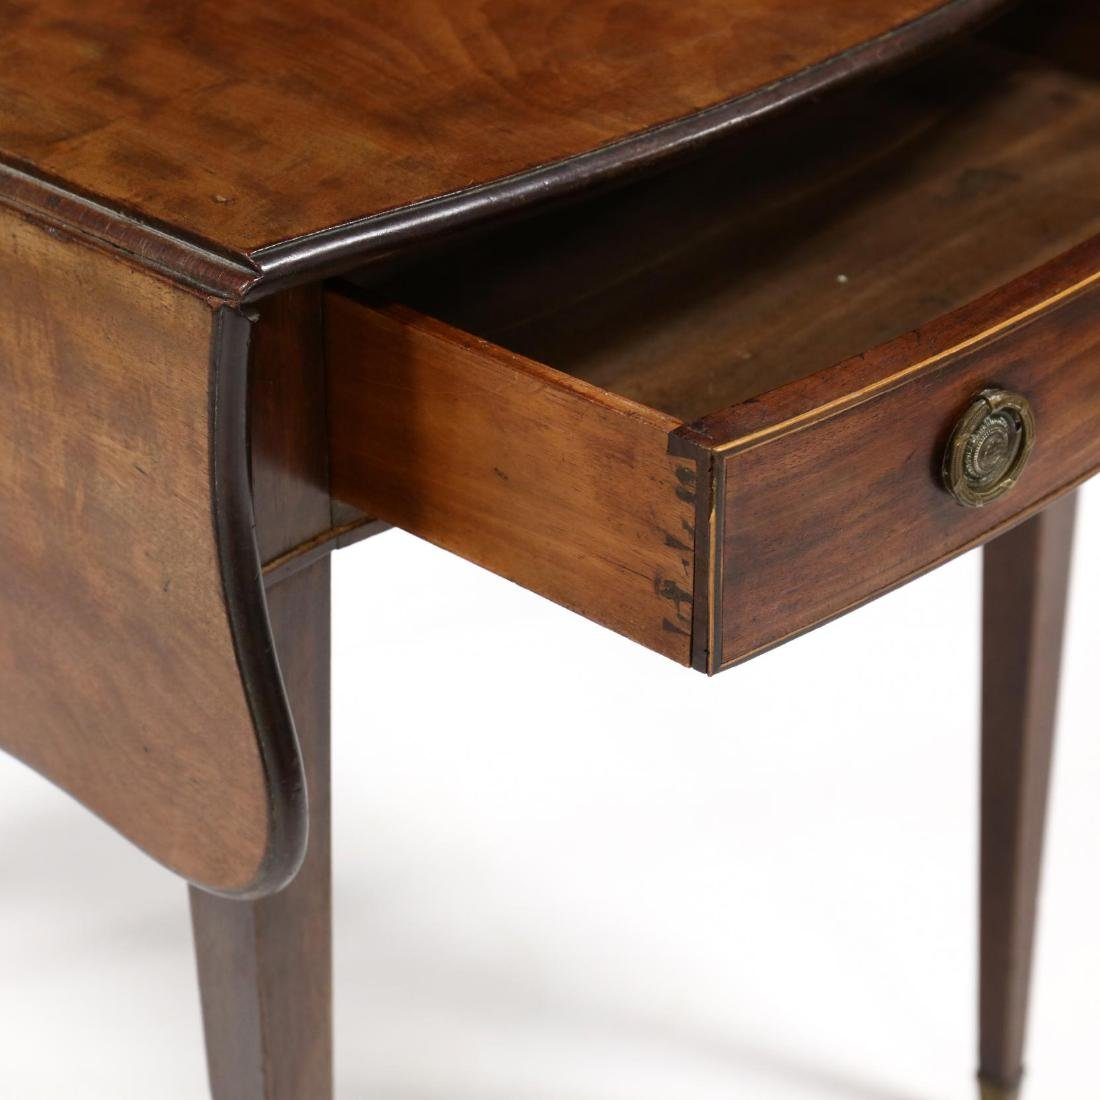 George III Mahogany Bow Front Pembroke Table - 3